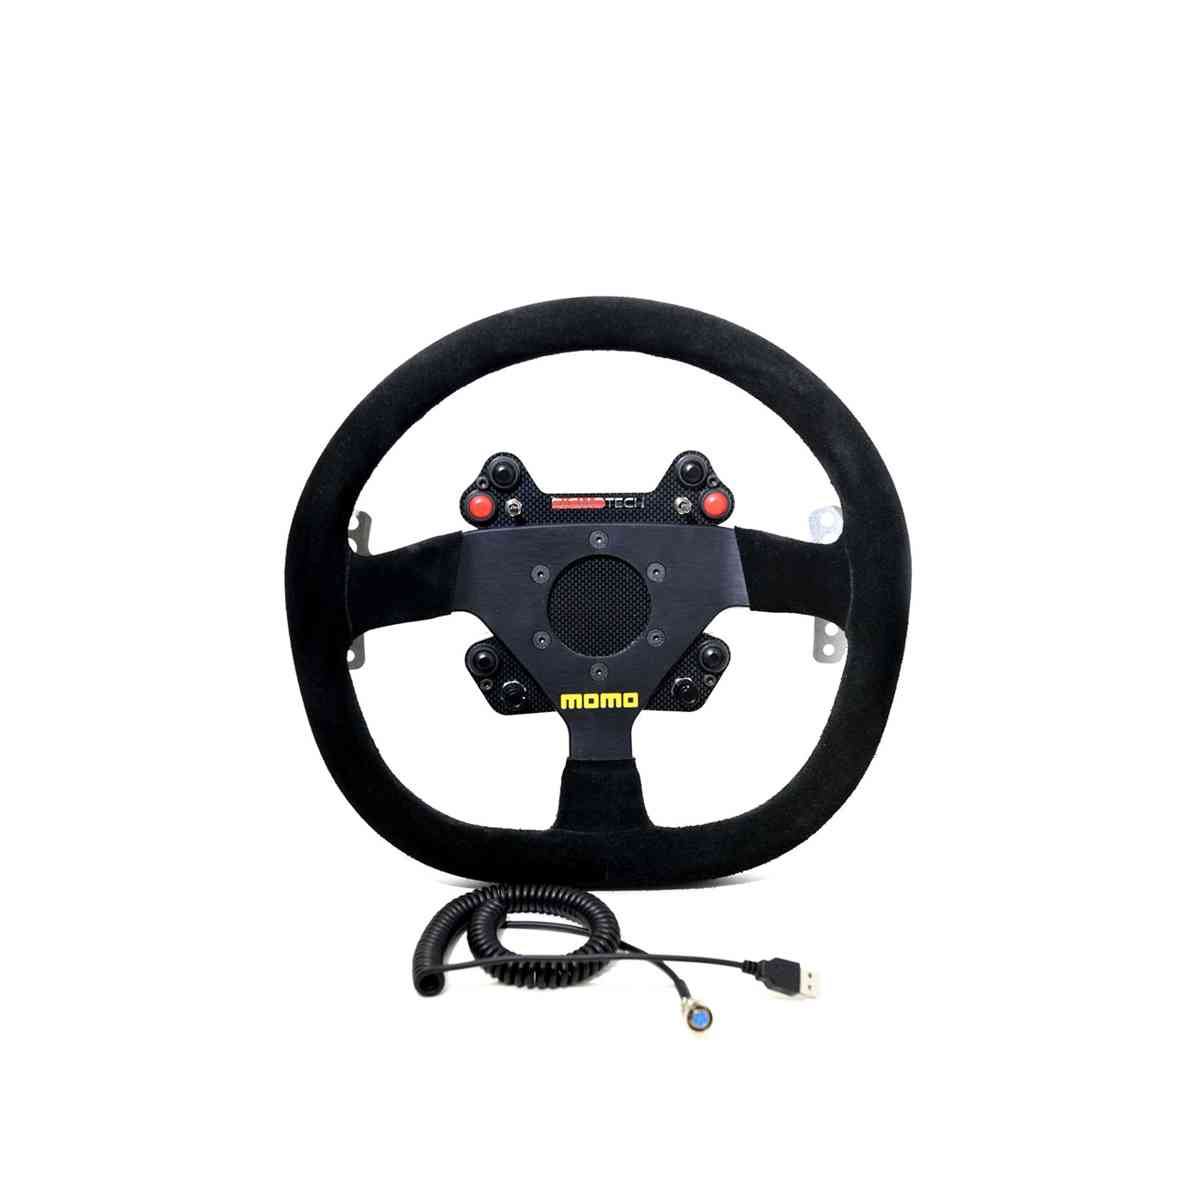 RealGear WHEELpro Momo MOD88 Add-on Wheel for Direct-Drive Servos